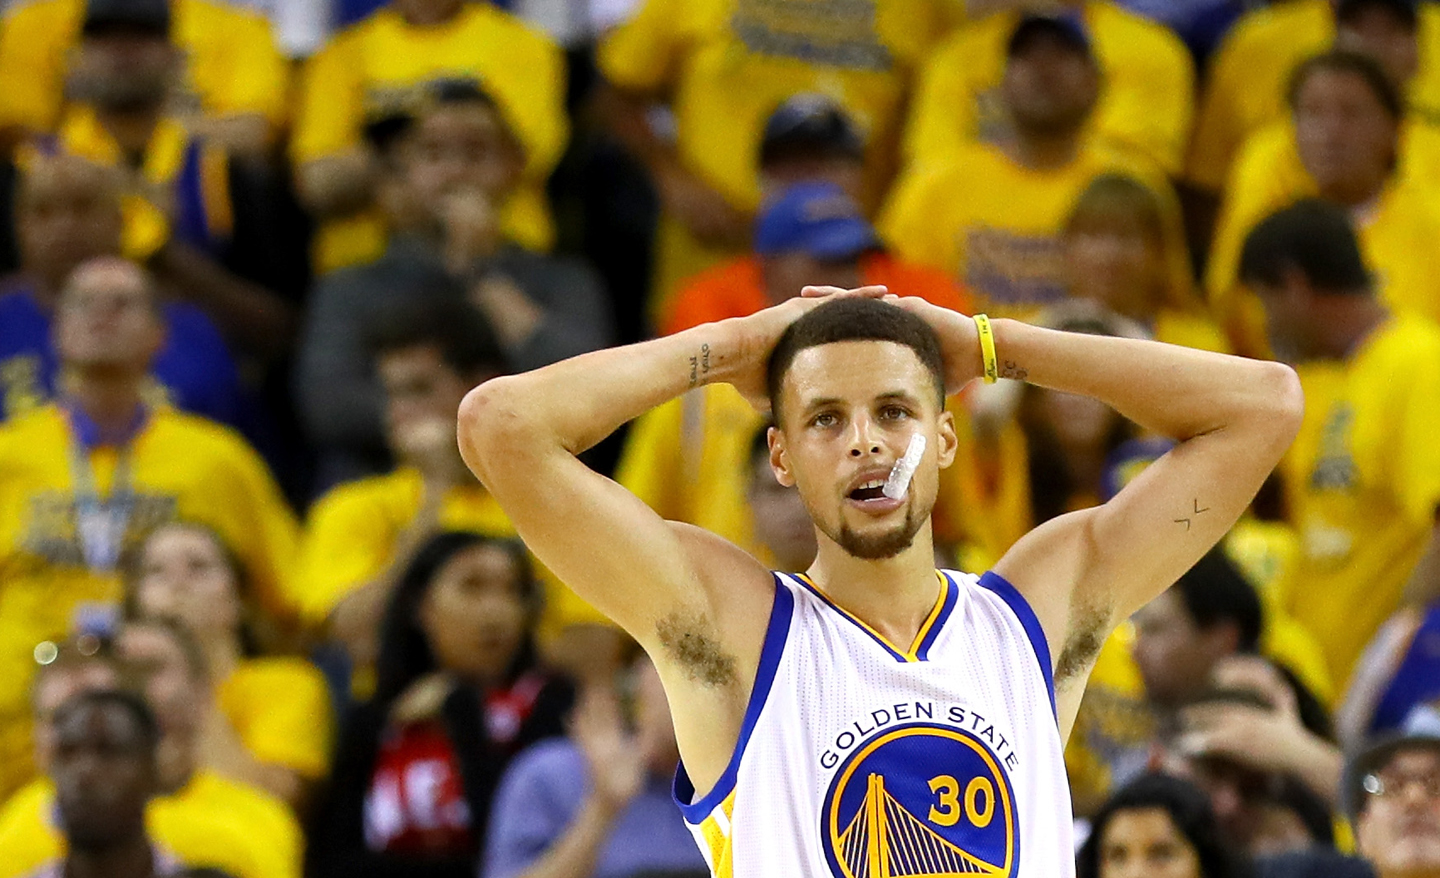 Stephen Curry #30 of the Golden State Warriors reacts after losing 93-89 in Game 7 of the 2016 NBA Finals against the Cleveland Cavaliers at ORACLE Arena on June 19, 2016 in Oakland, California.